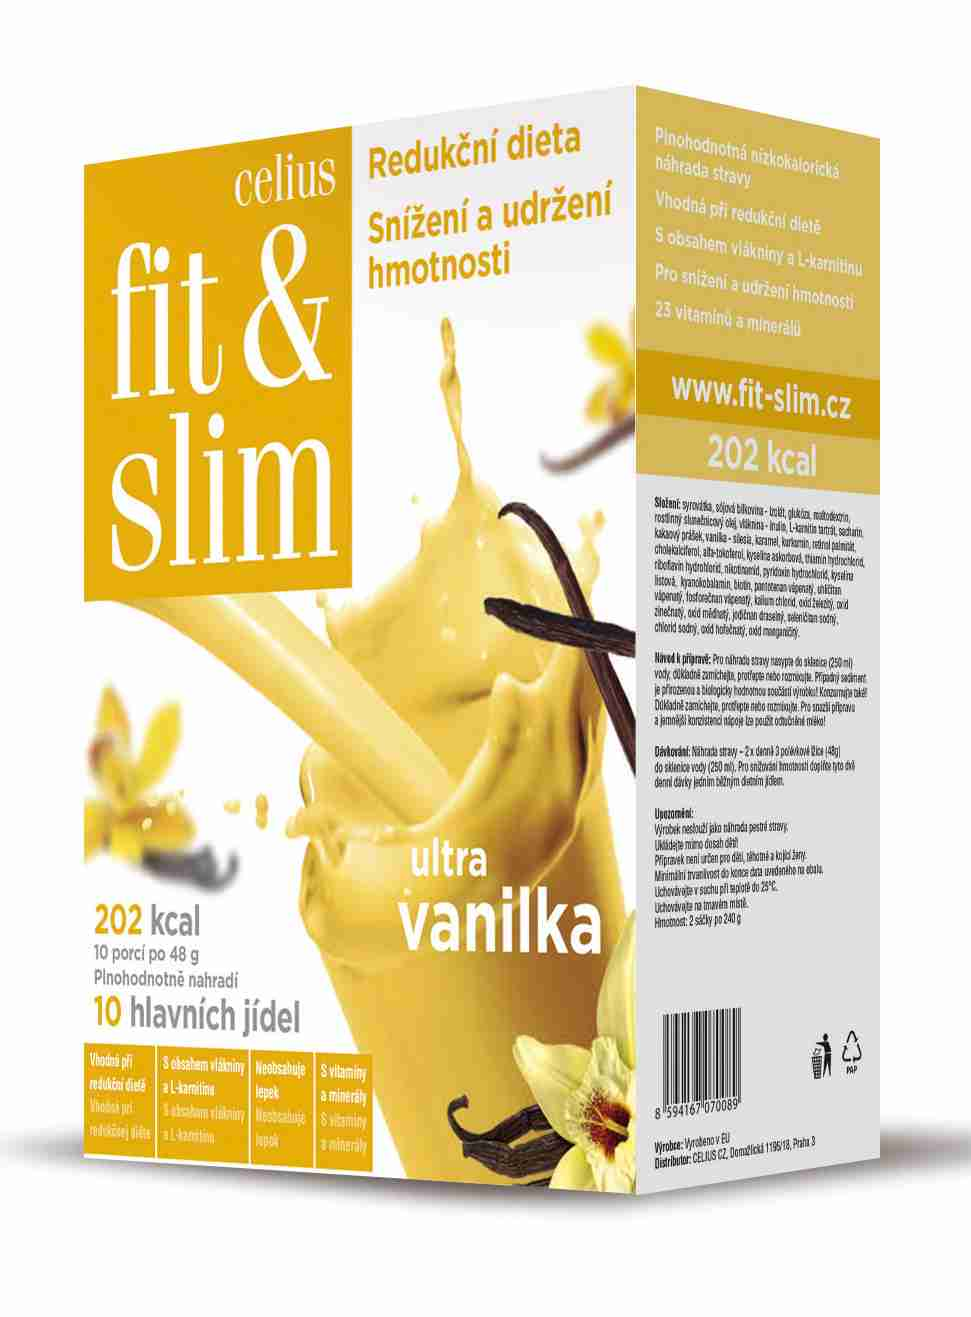 Celius Fit and Slim ultra vanilka 2x240 g